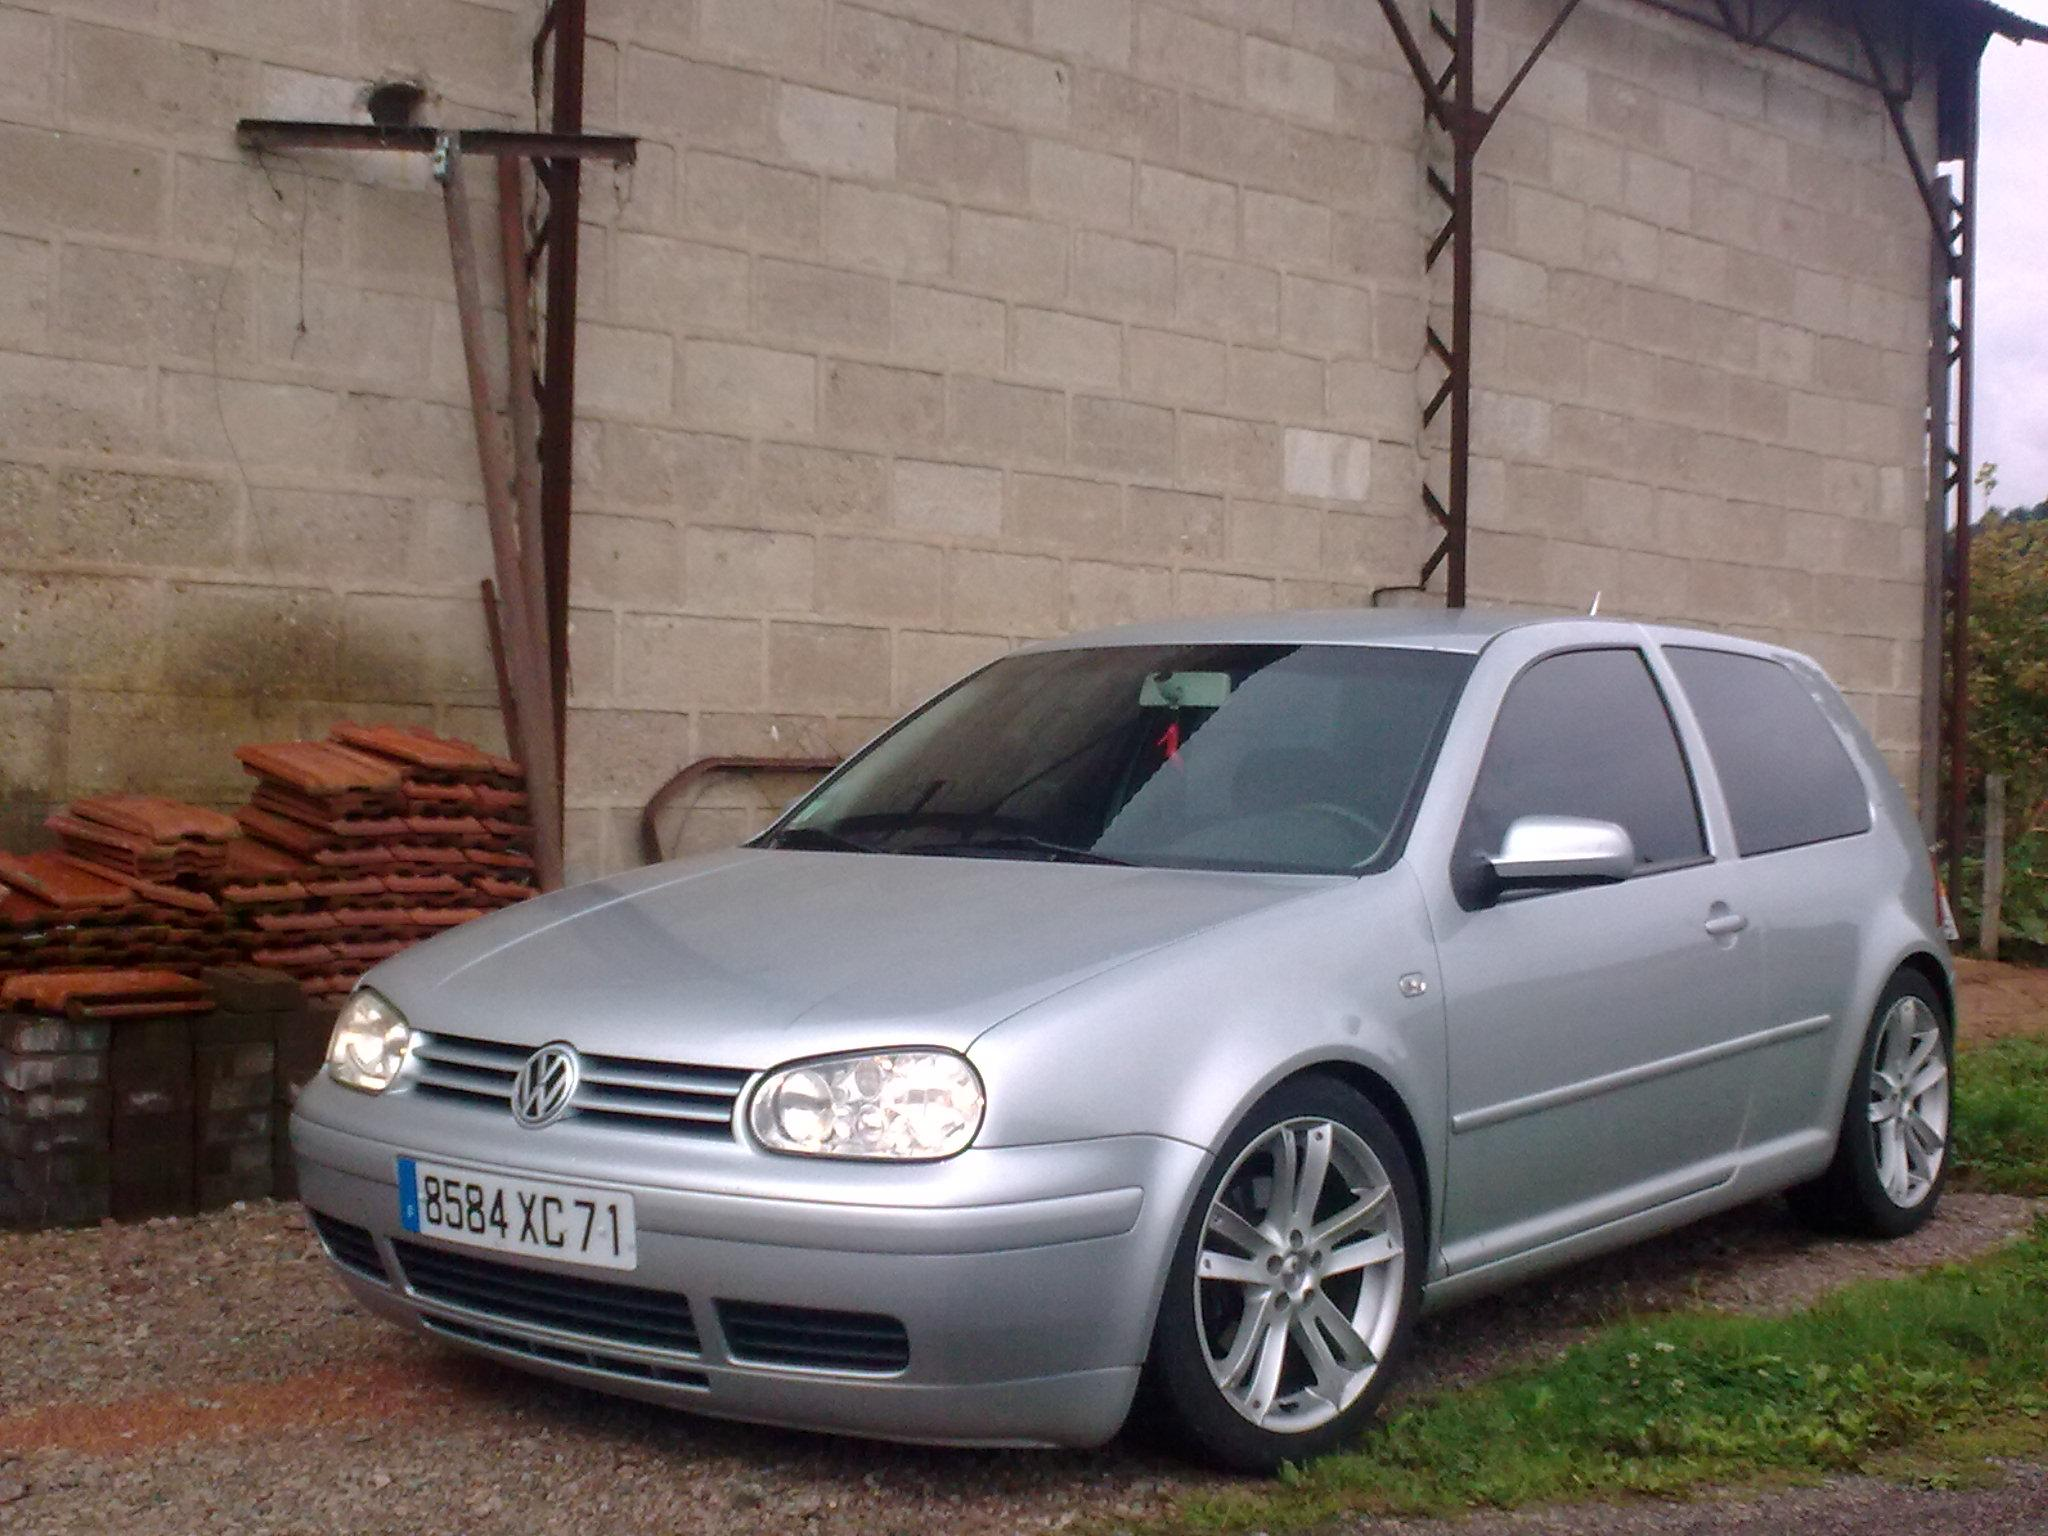 golf 4 de foolek71   garage des golf iv tdi 90